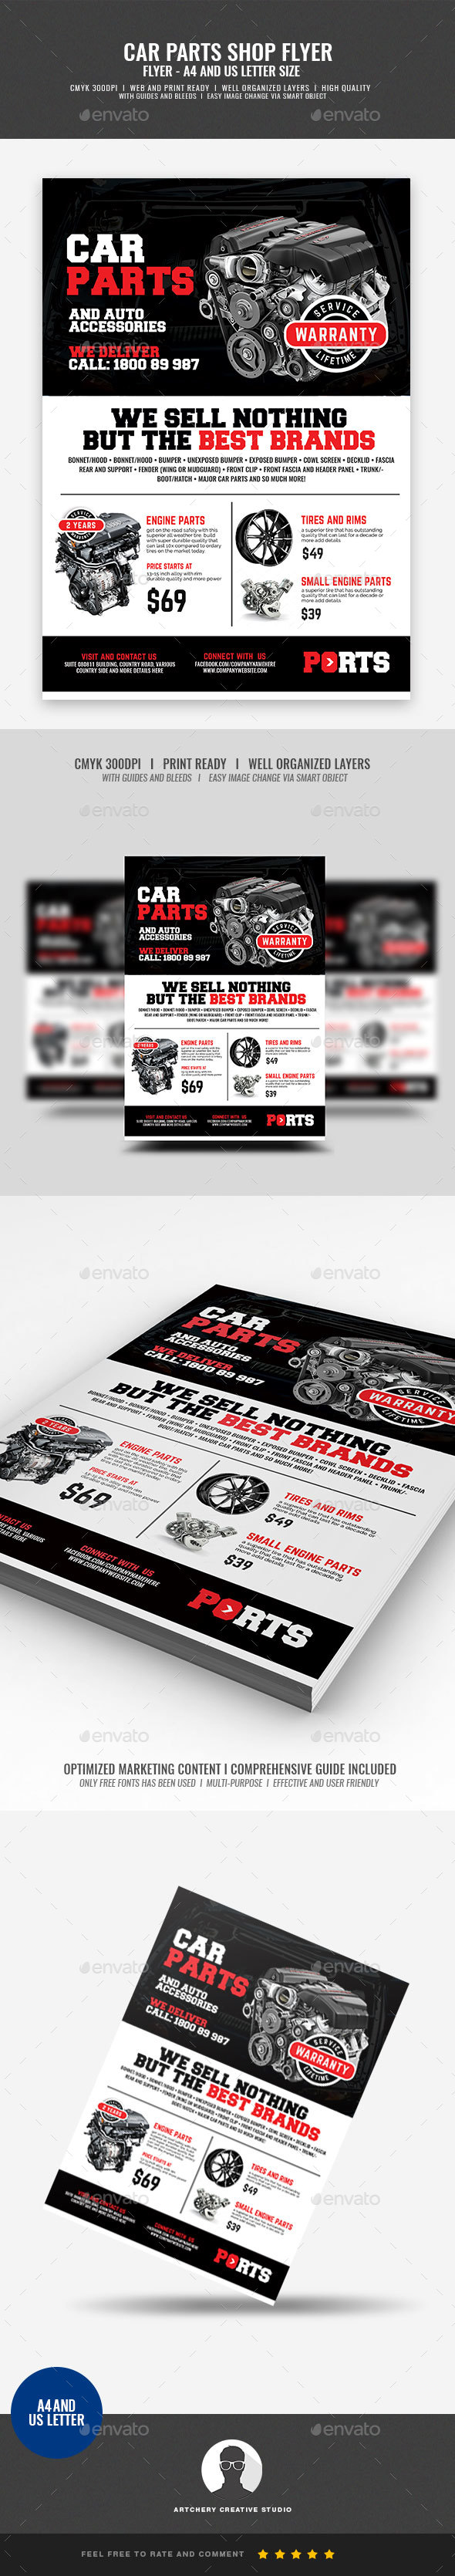 Car Parts and Auto Supply Center Flyer - Corporate Flyers